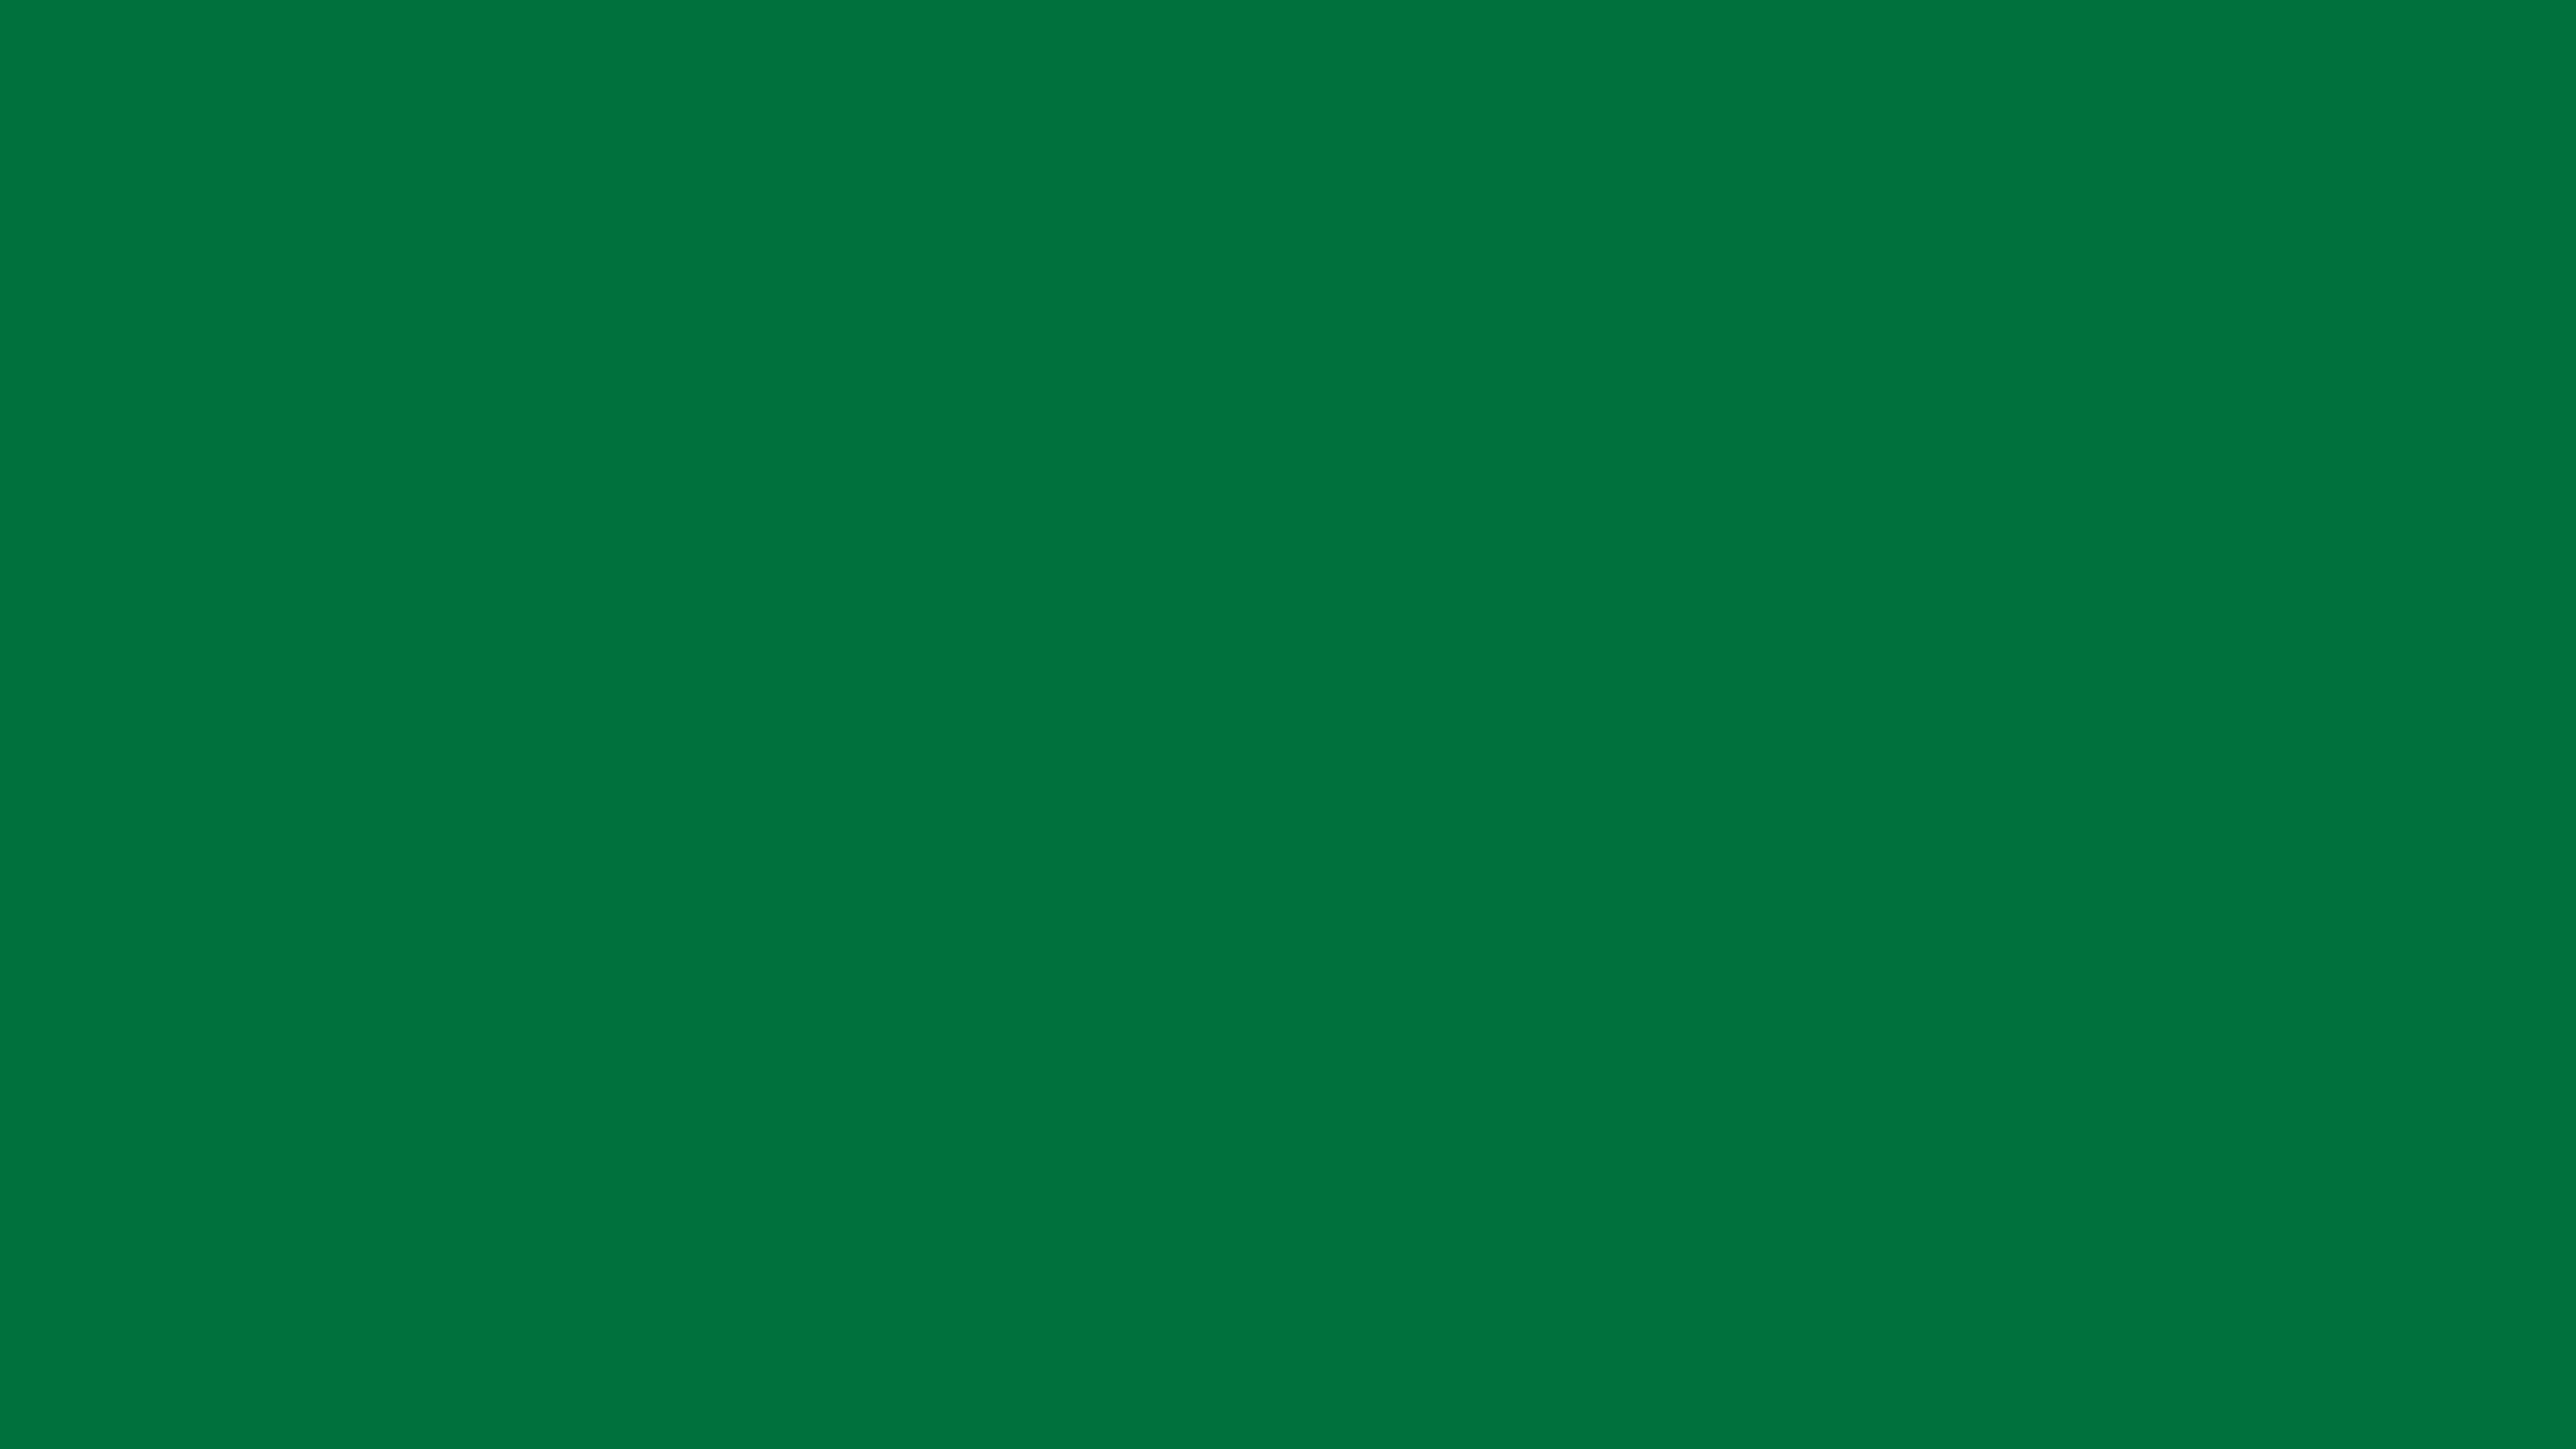 3840x2160 Dartmouth Green Solid Color Background